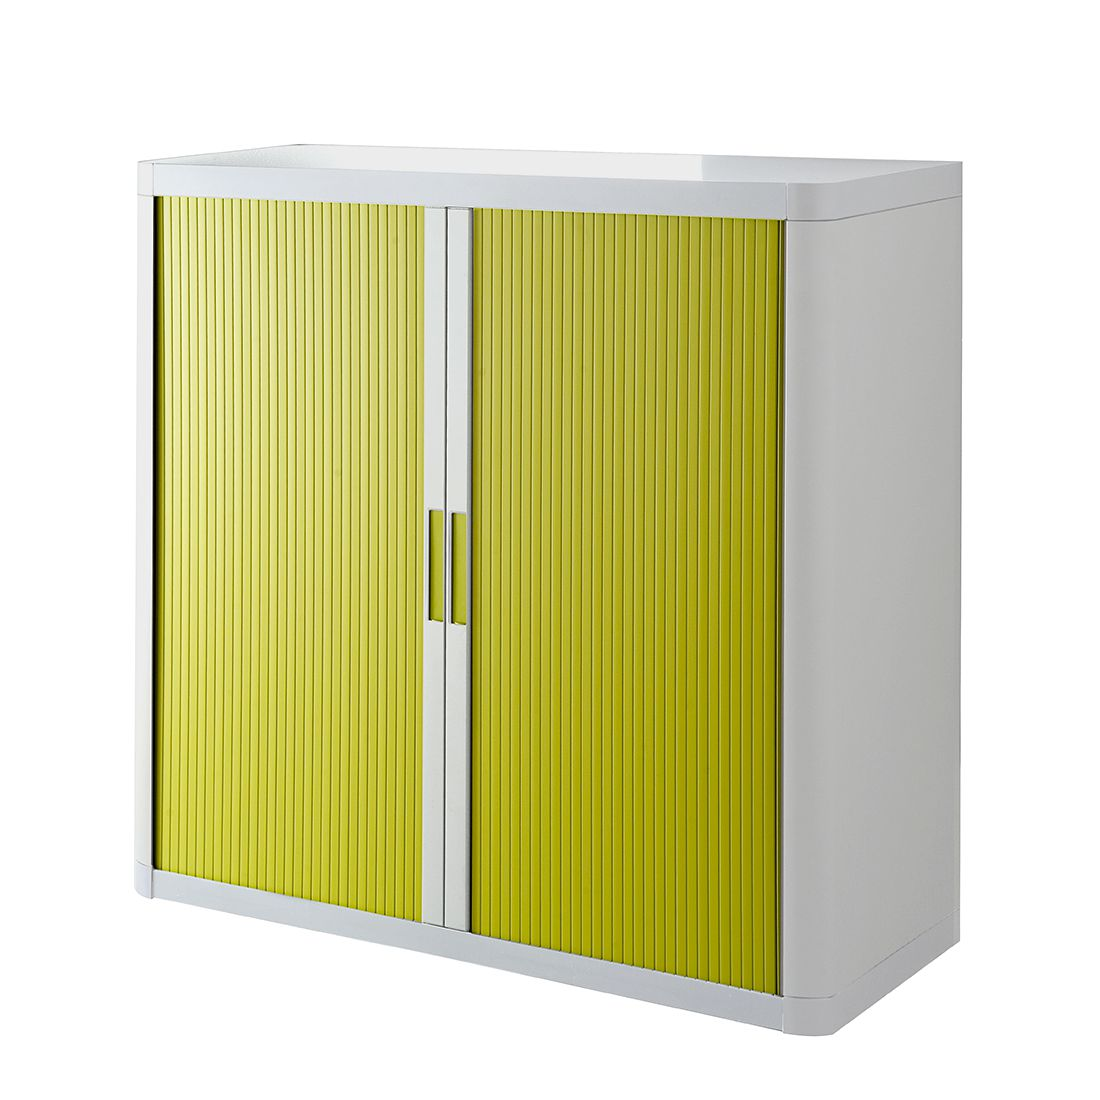 Armadio archivio easyOffice - Bianco / Verde - 104 cm, easy Office und Paperflow